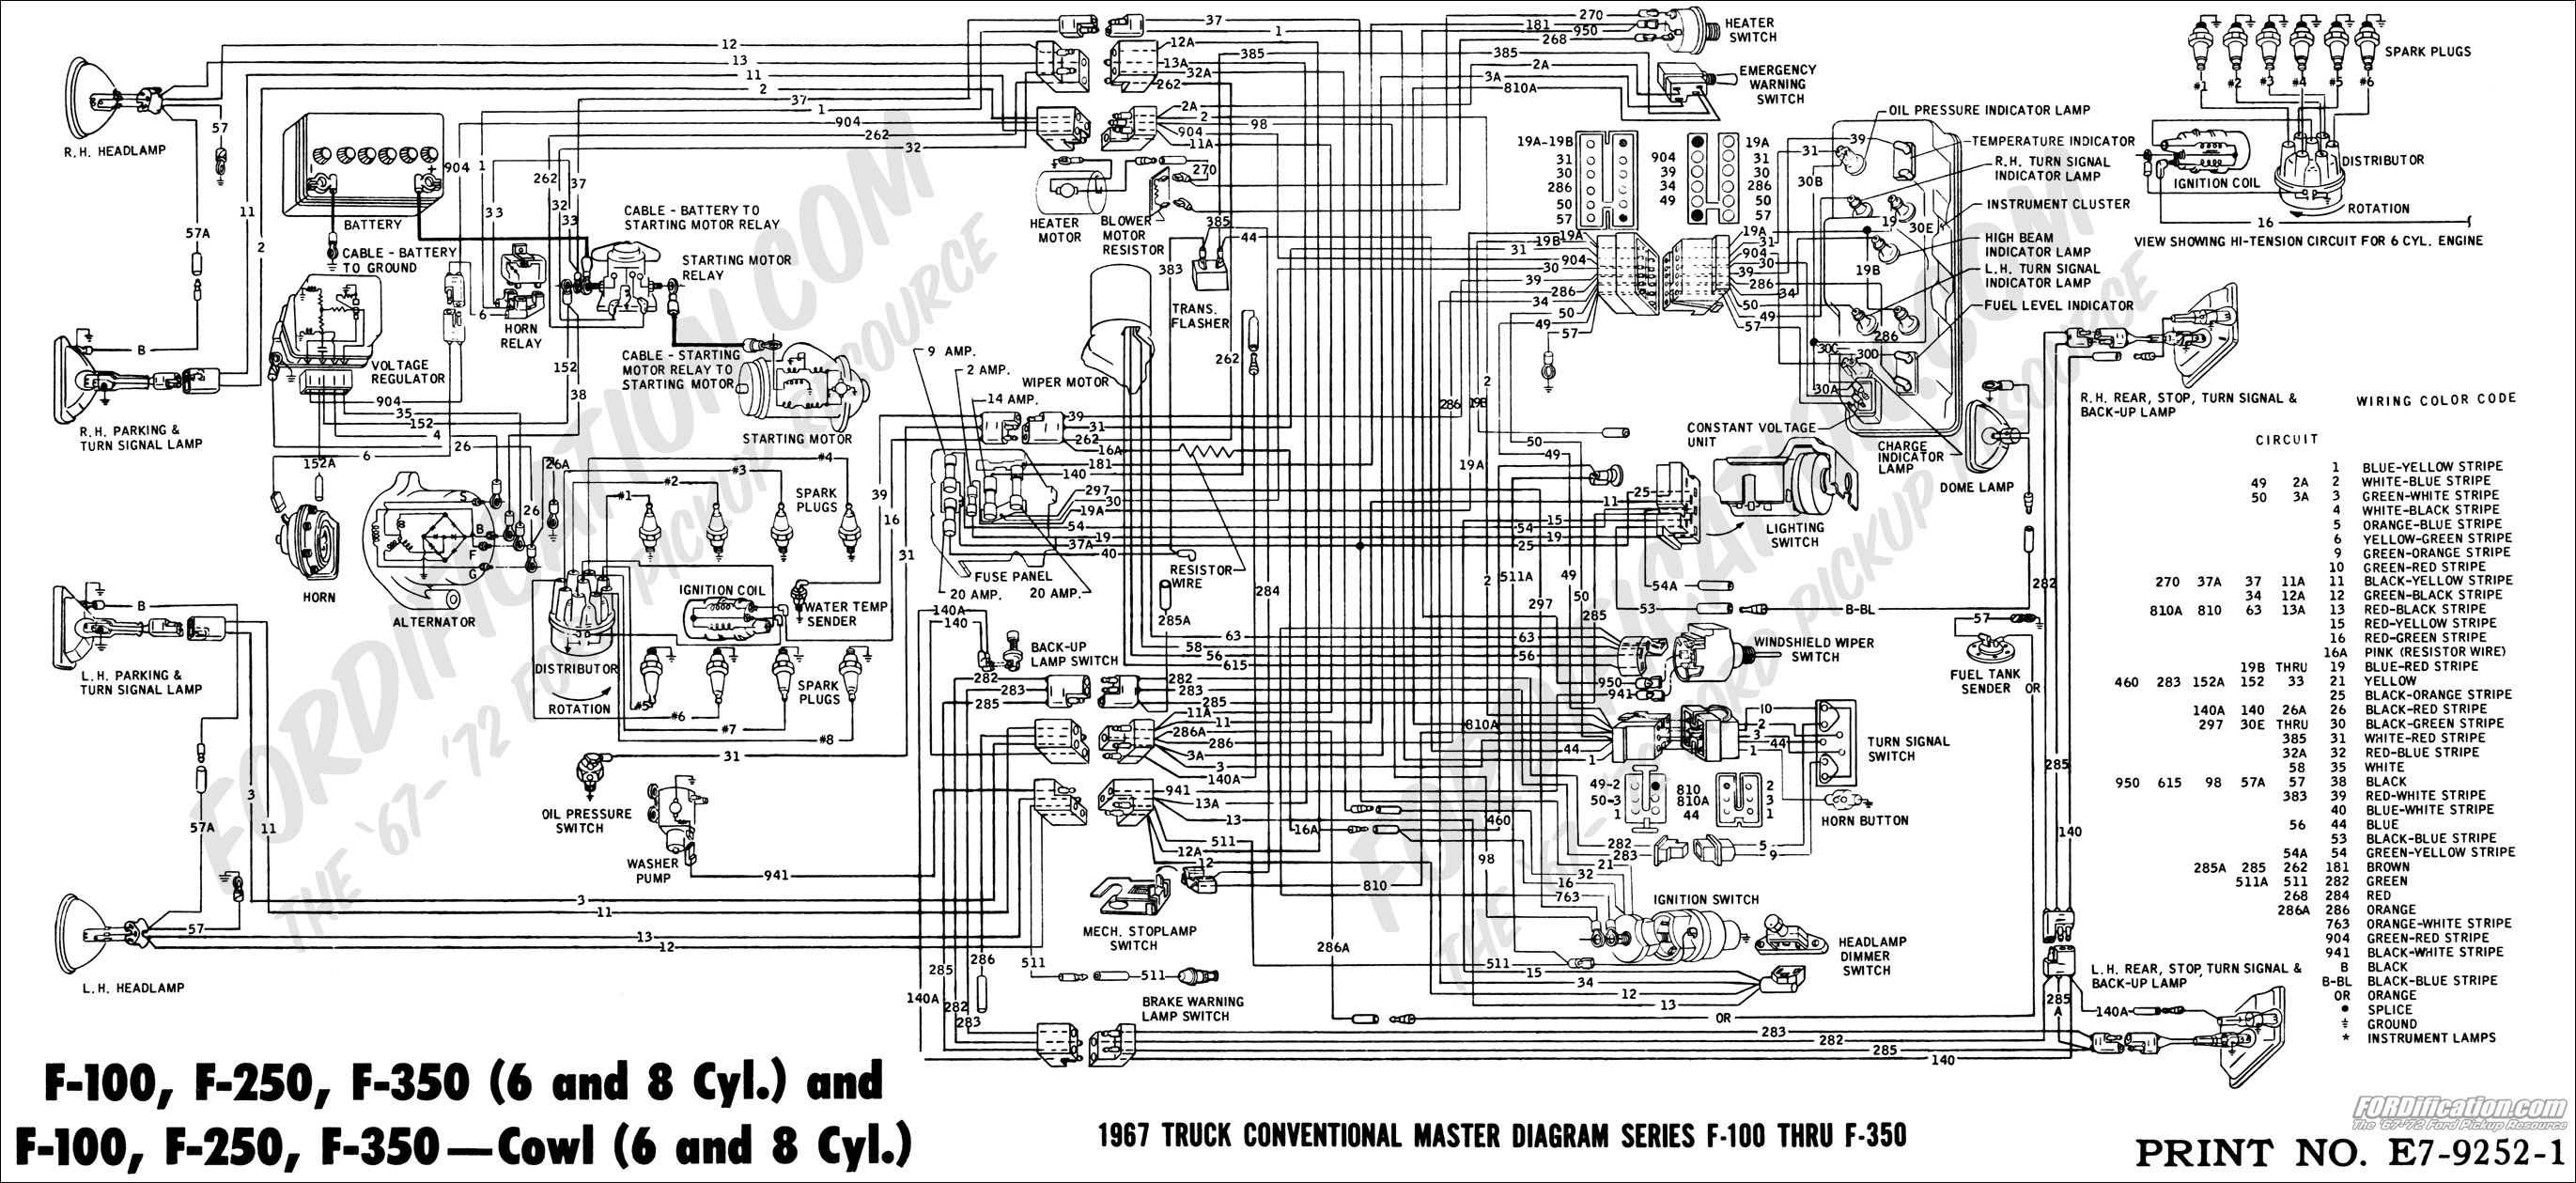 Chevy Hei Mallory Wiring Diagram 1993 F700 Distributor Reinvent Your 1978 Ford Online Schematics Rh Delvato Co